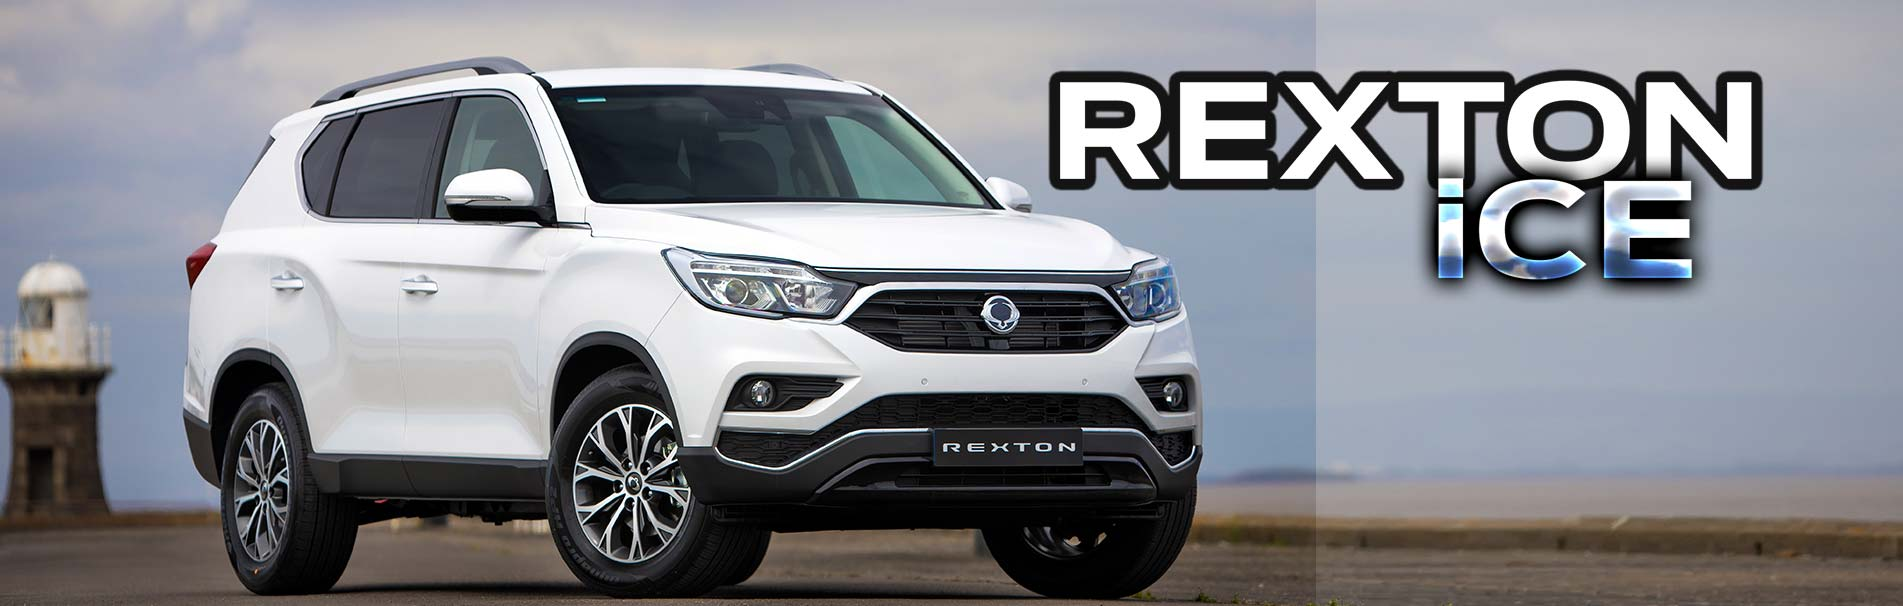 new-ssangyong-rexton-ice-special-edition-on-sale-sli